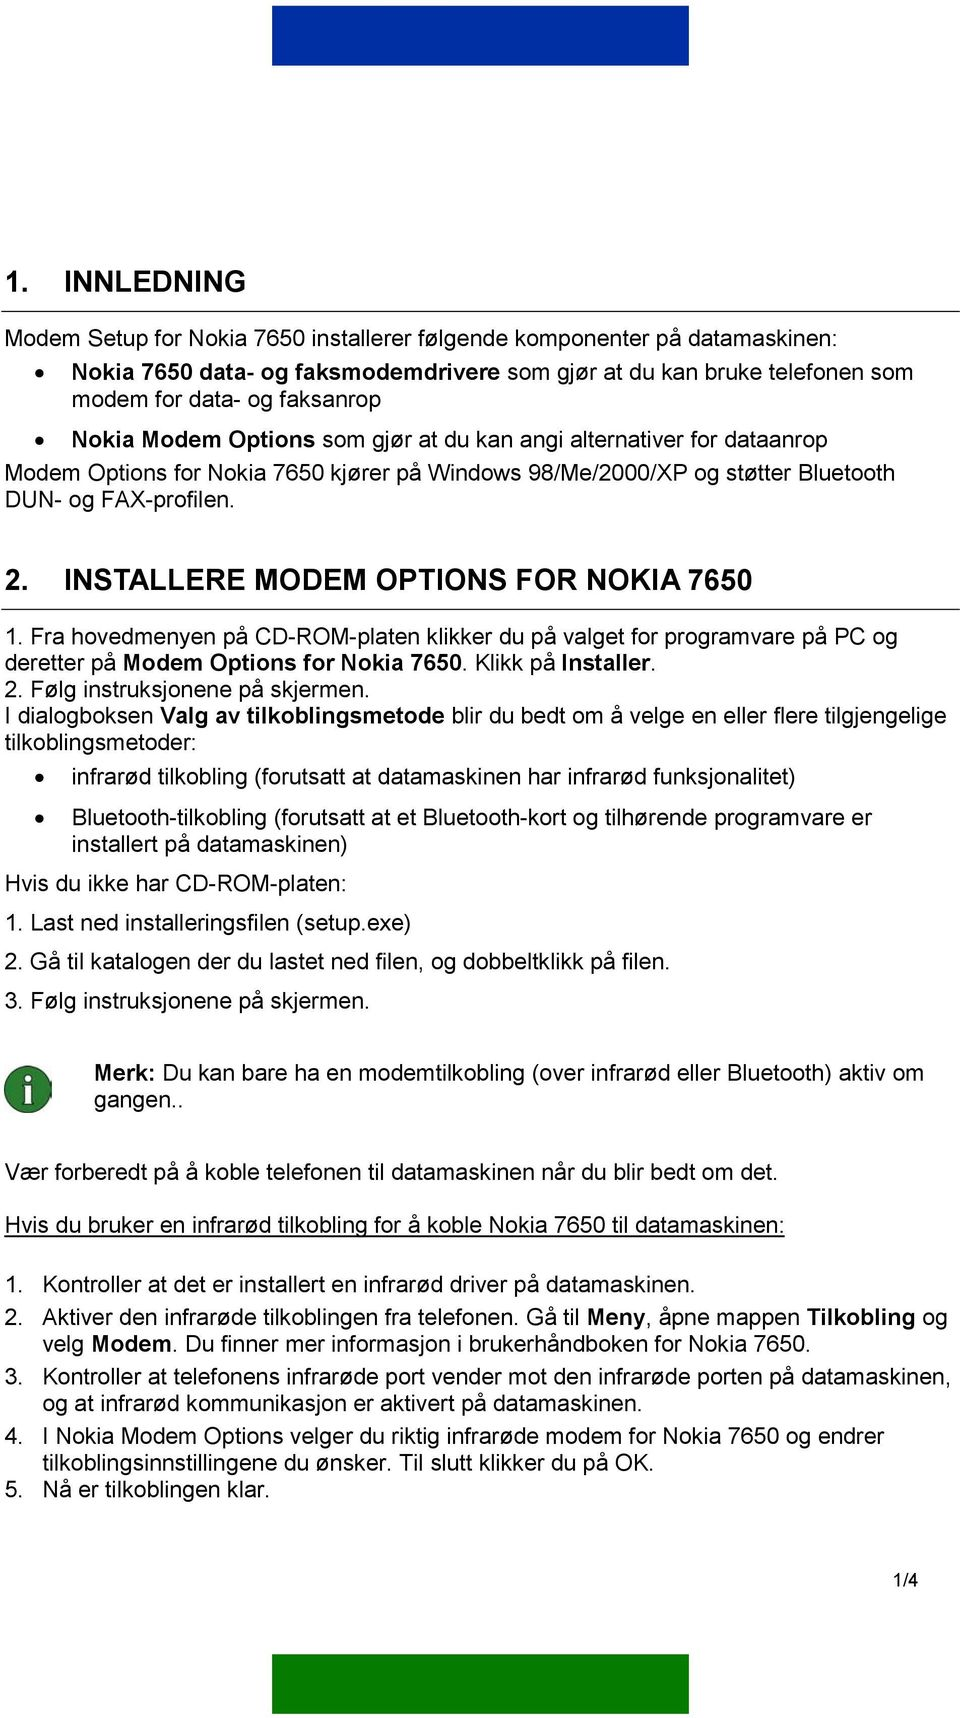 INSTALLERE MODEM OPTIONS FOR NOKIA 7650 1. Fra hovedmenyen på CD-ROM-platen klikker du på valget for programvare på PC og deretter på Modem Options for Nokia 7650. Klikk på Installer. 2.